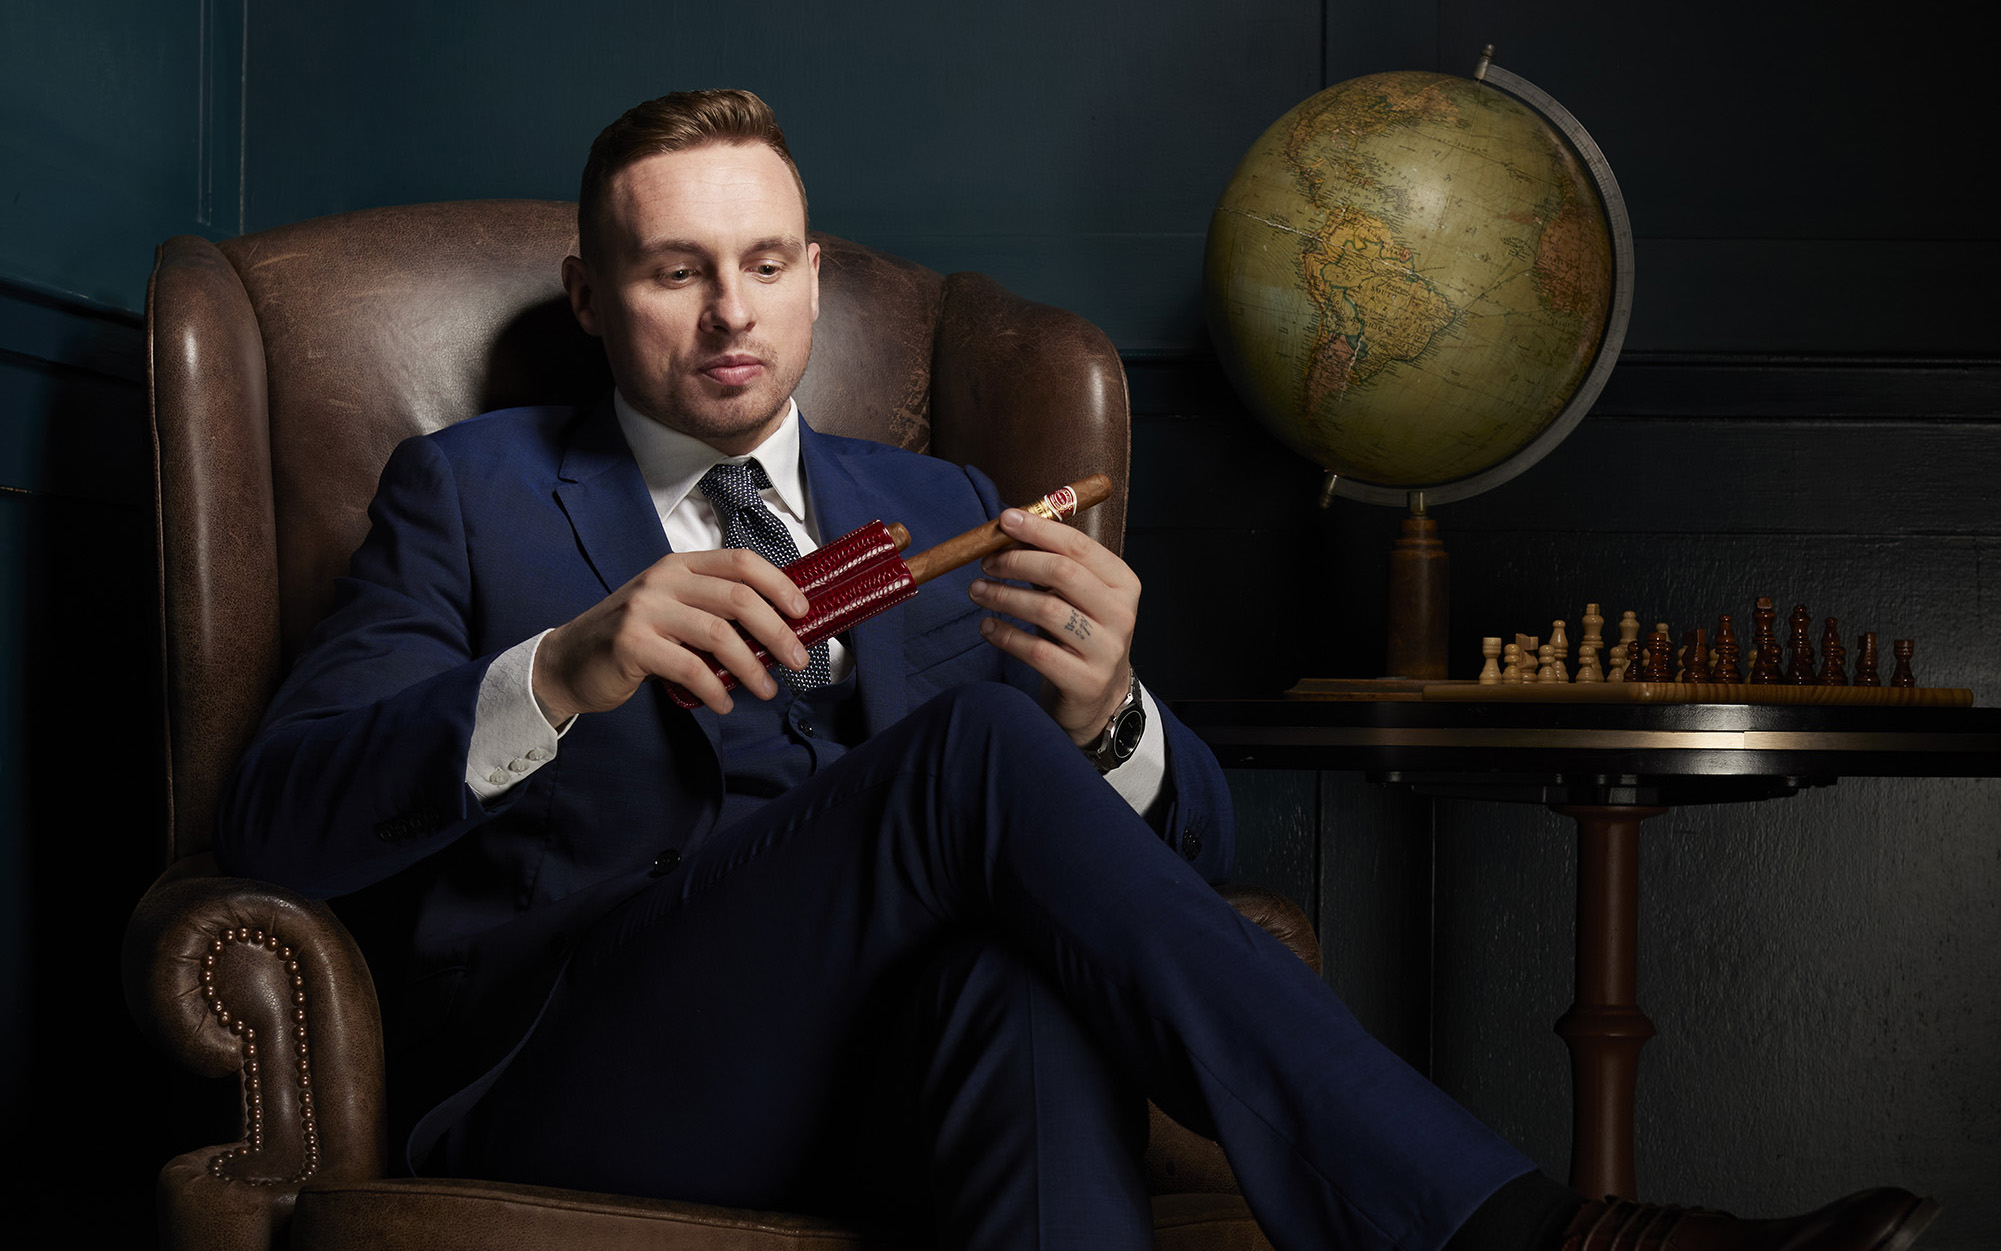 David Stockdale sat in a leather armchair wearing a blue suit holding a cigar